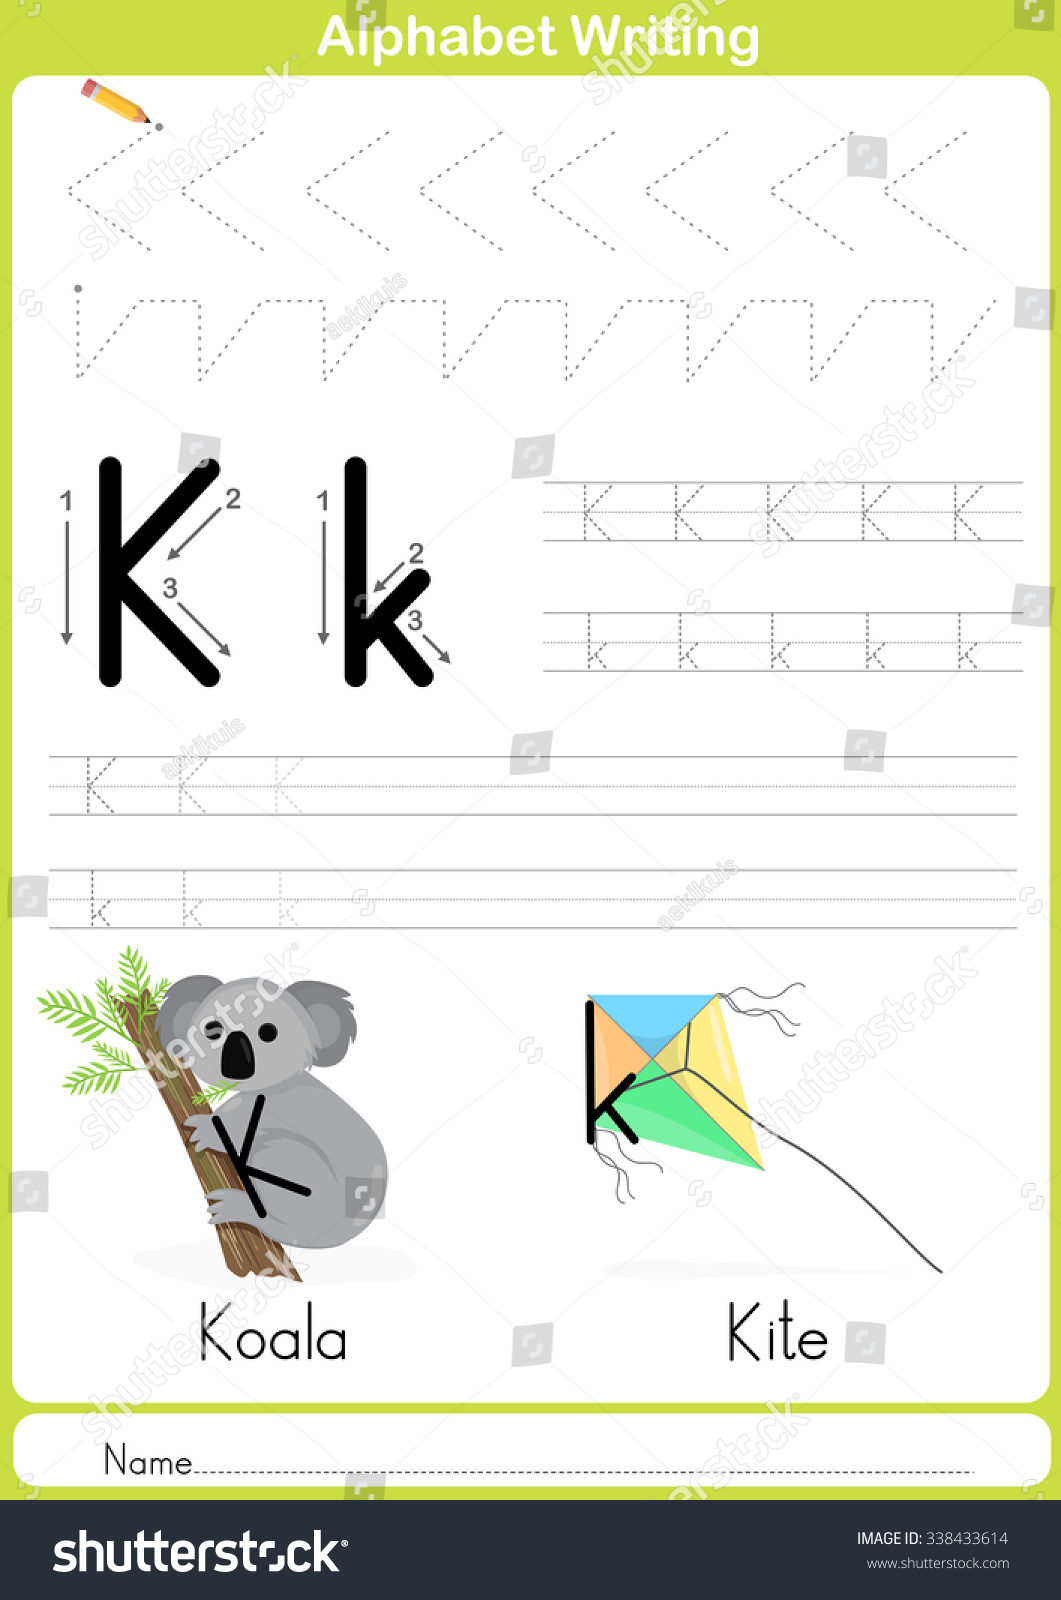 Kite Worksheets Preschool Trace Kite Best Free Printable Worksheets